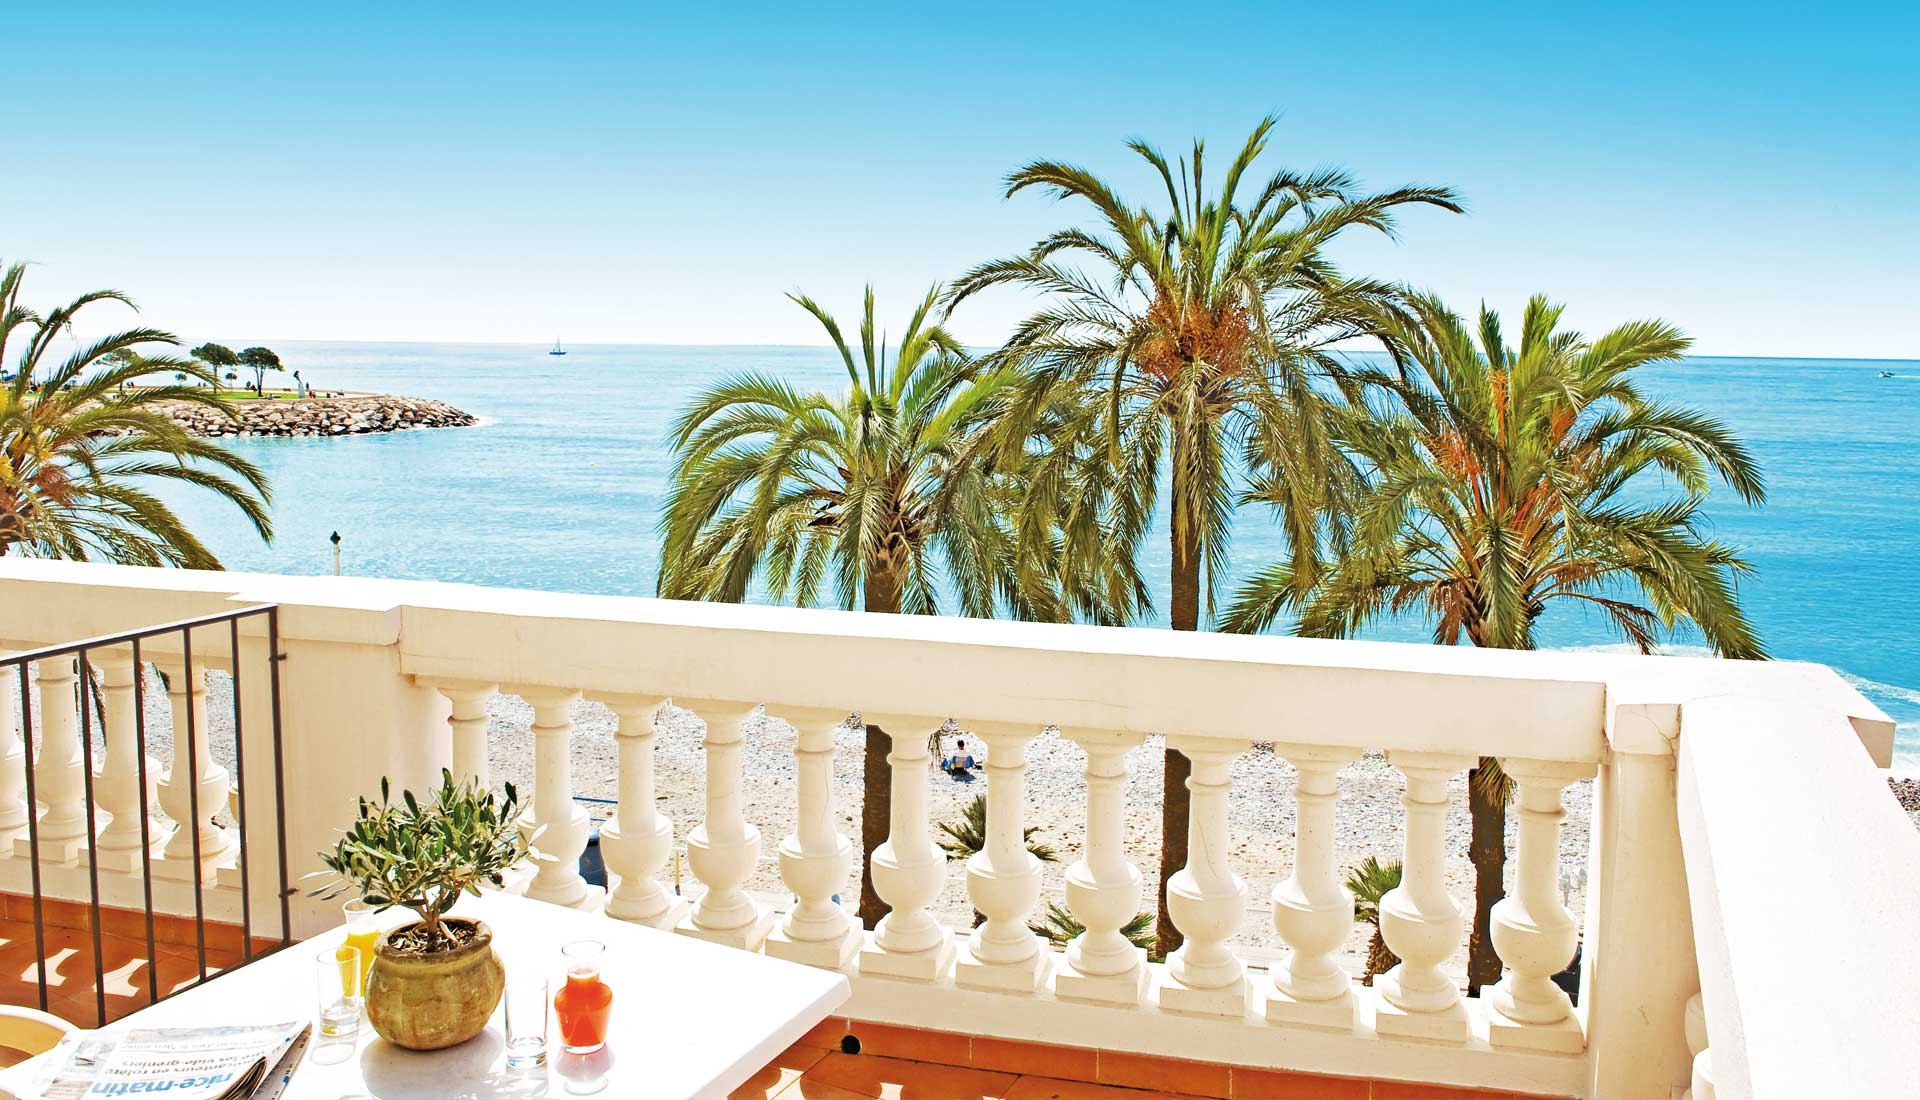 Splendid sea view from a balcony of the 3 stars hotel Bamoral in Menton